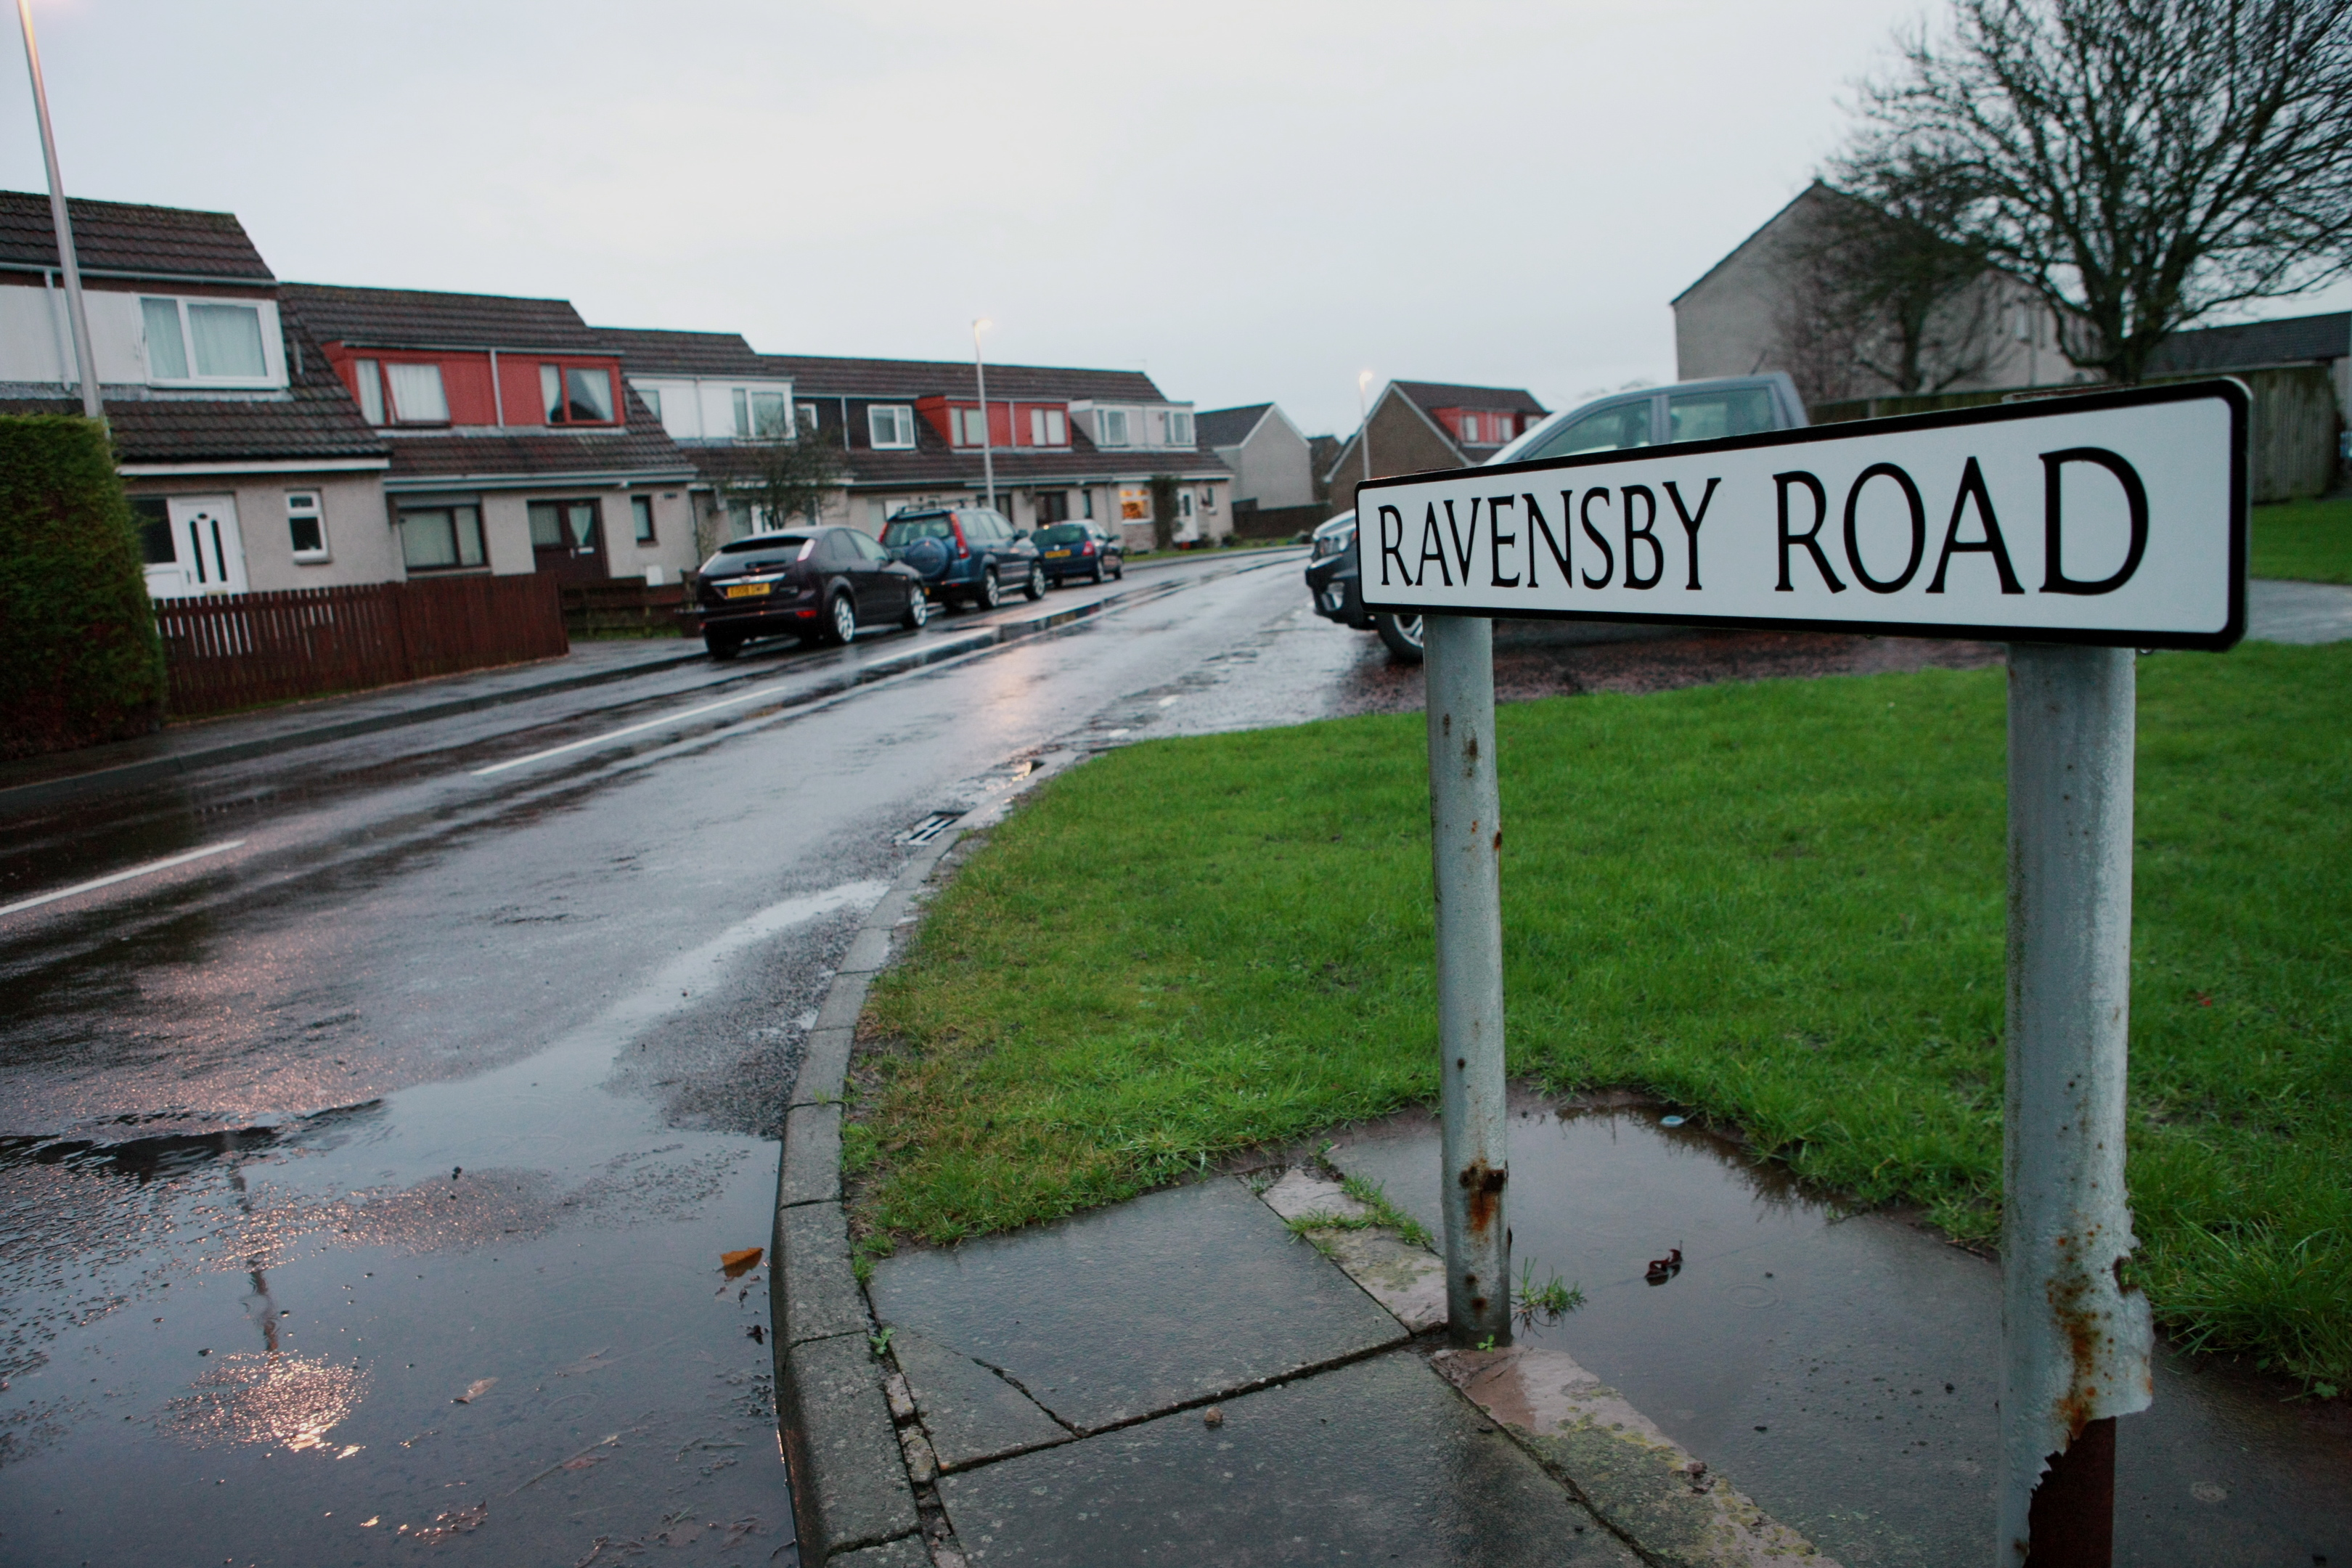 Ravensby Road